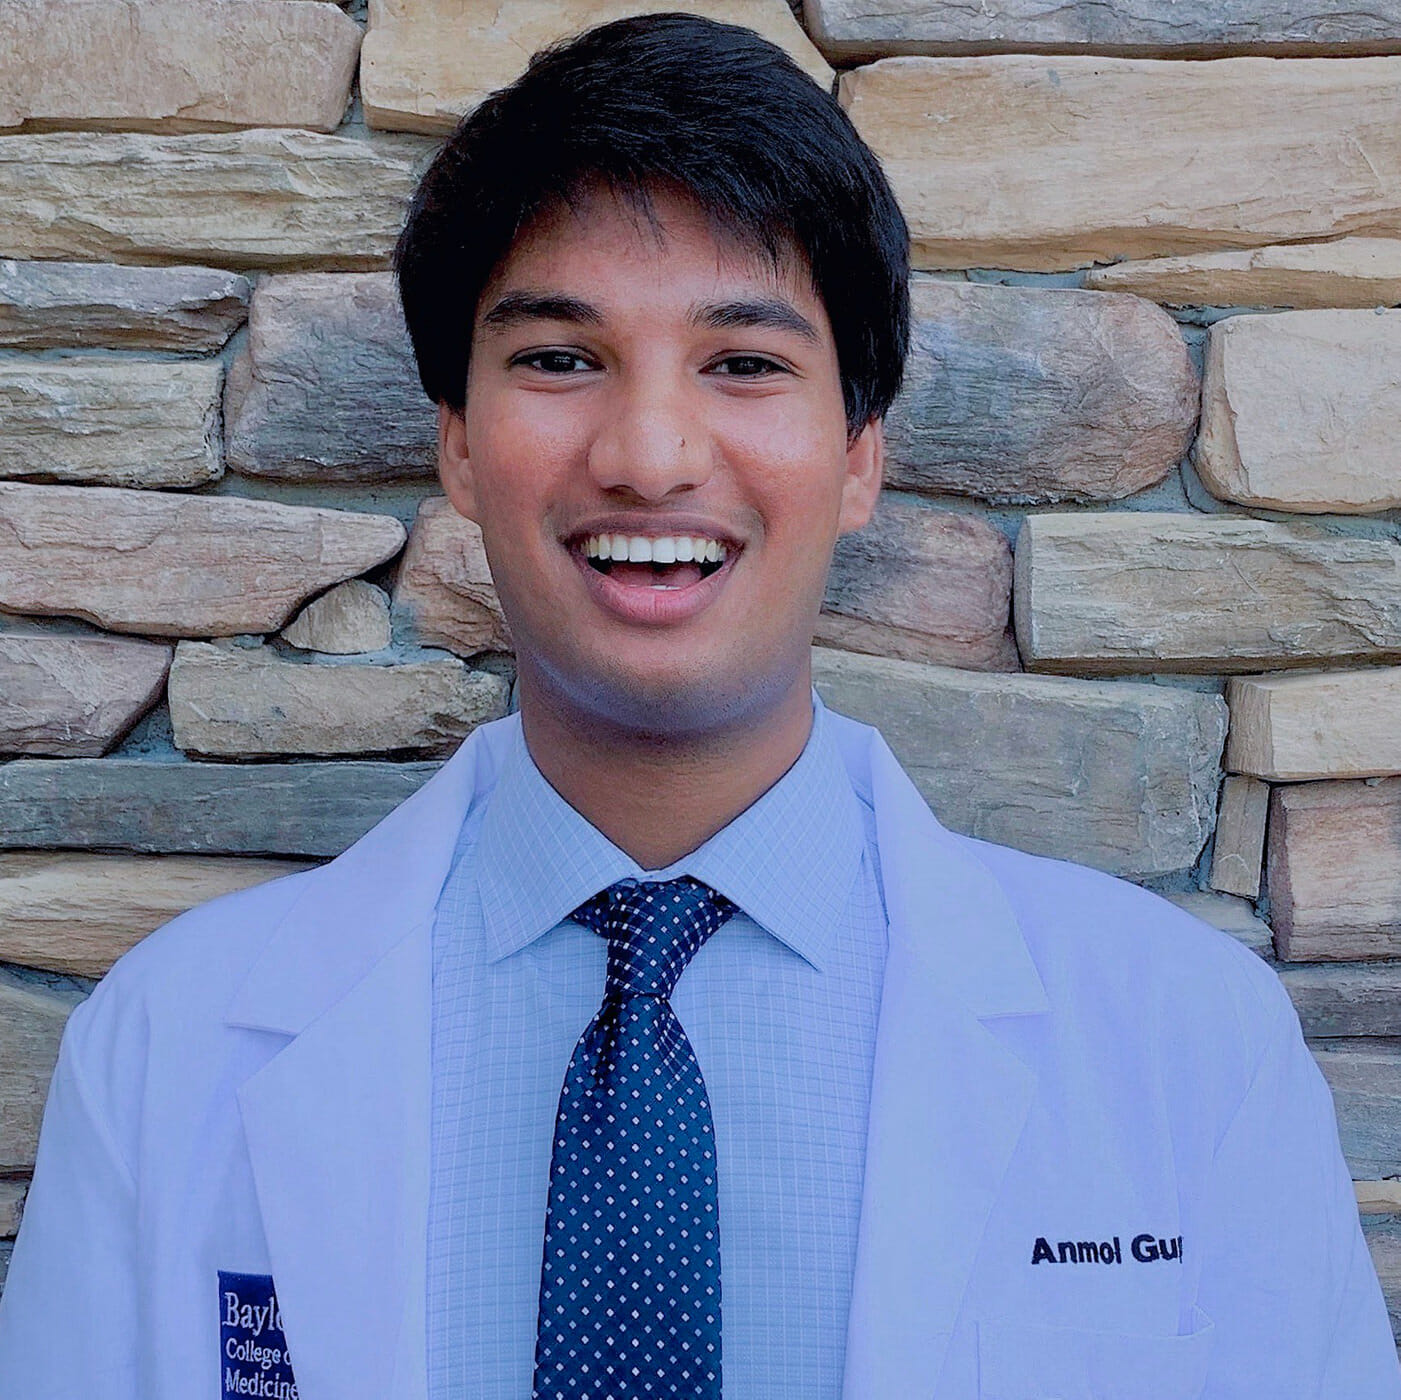 Anmol Gupta in a tie and labcoat